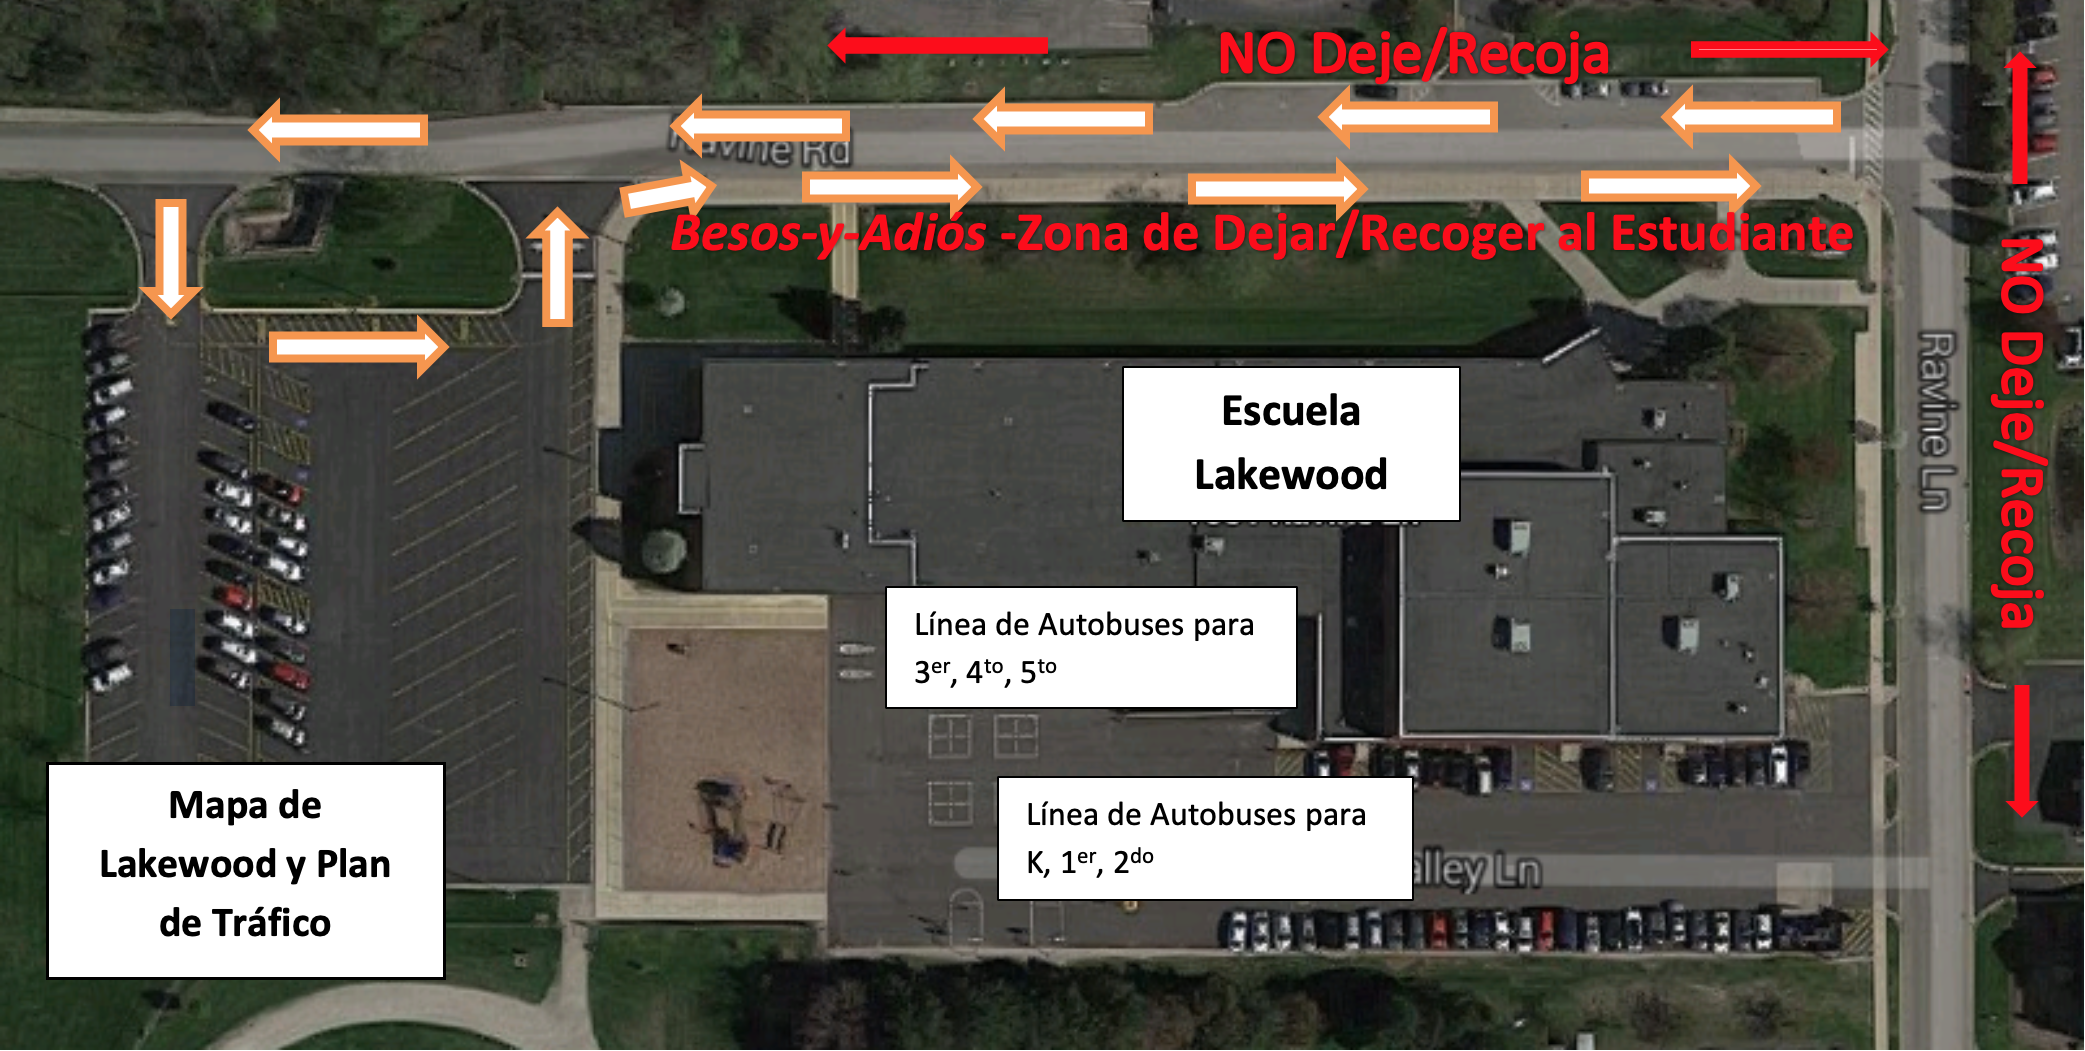 LWS Map and Traffic Pattern in Spanish